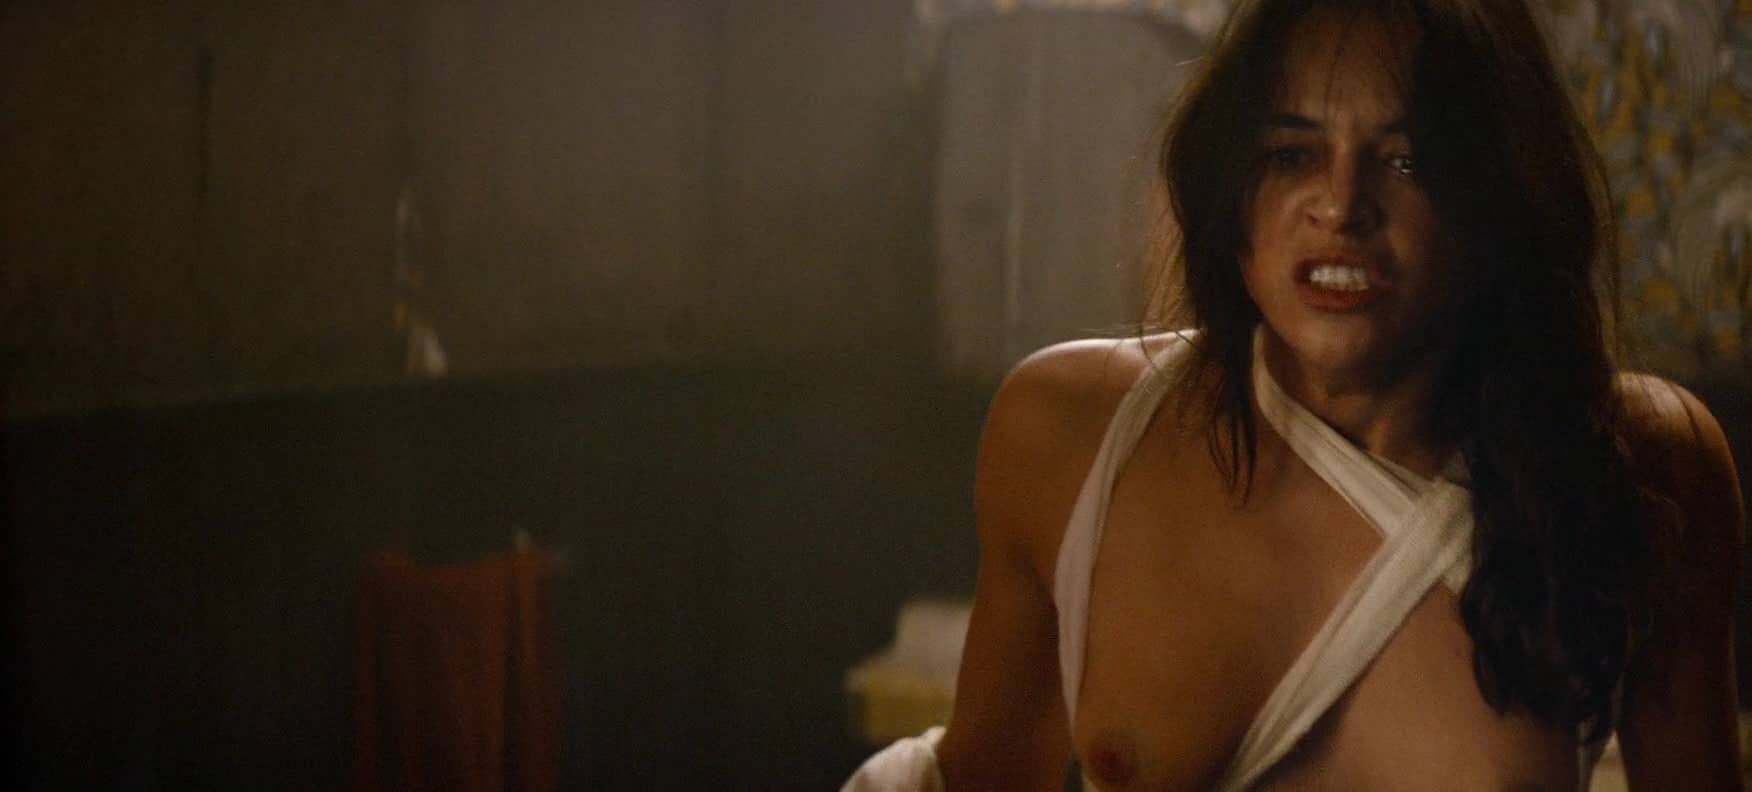 Michelle rodriguez boobs and hairy pussy exposed naked in the picture the assignment